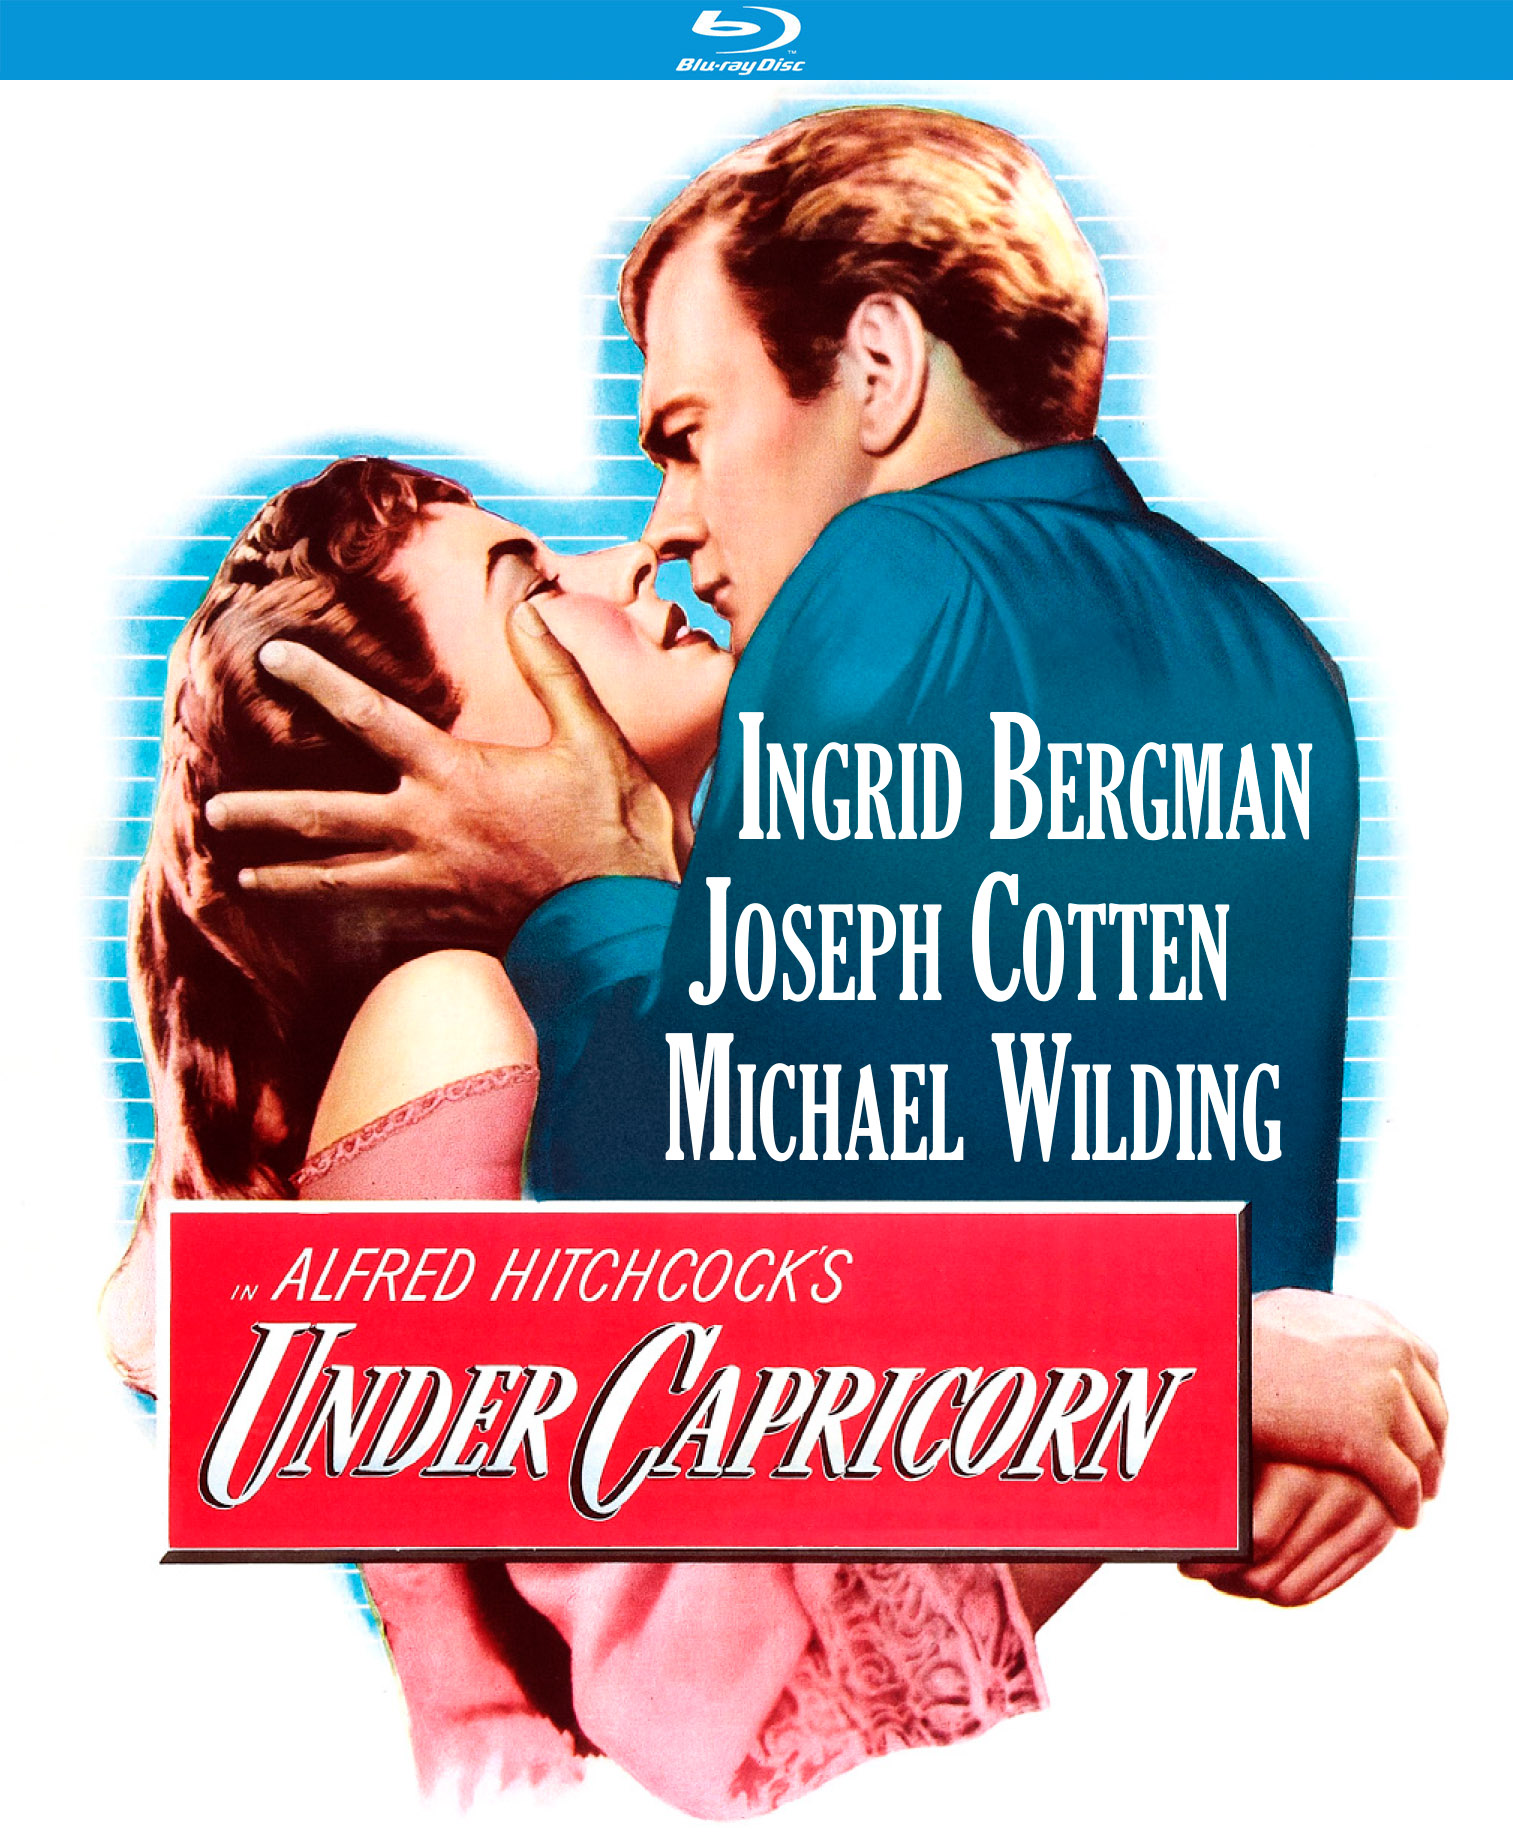 Under Capricorn (Special Edition) (Blu-ray) - Kino Lorber Home Video